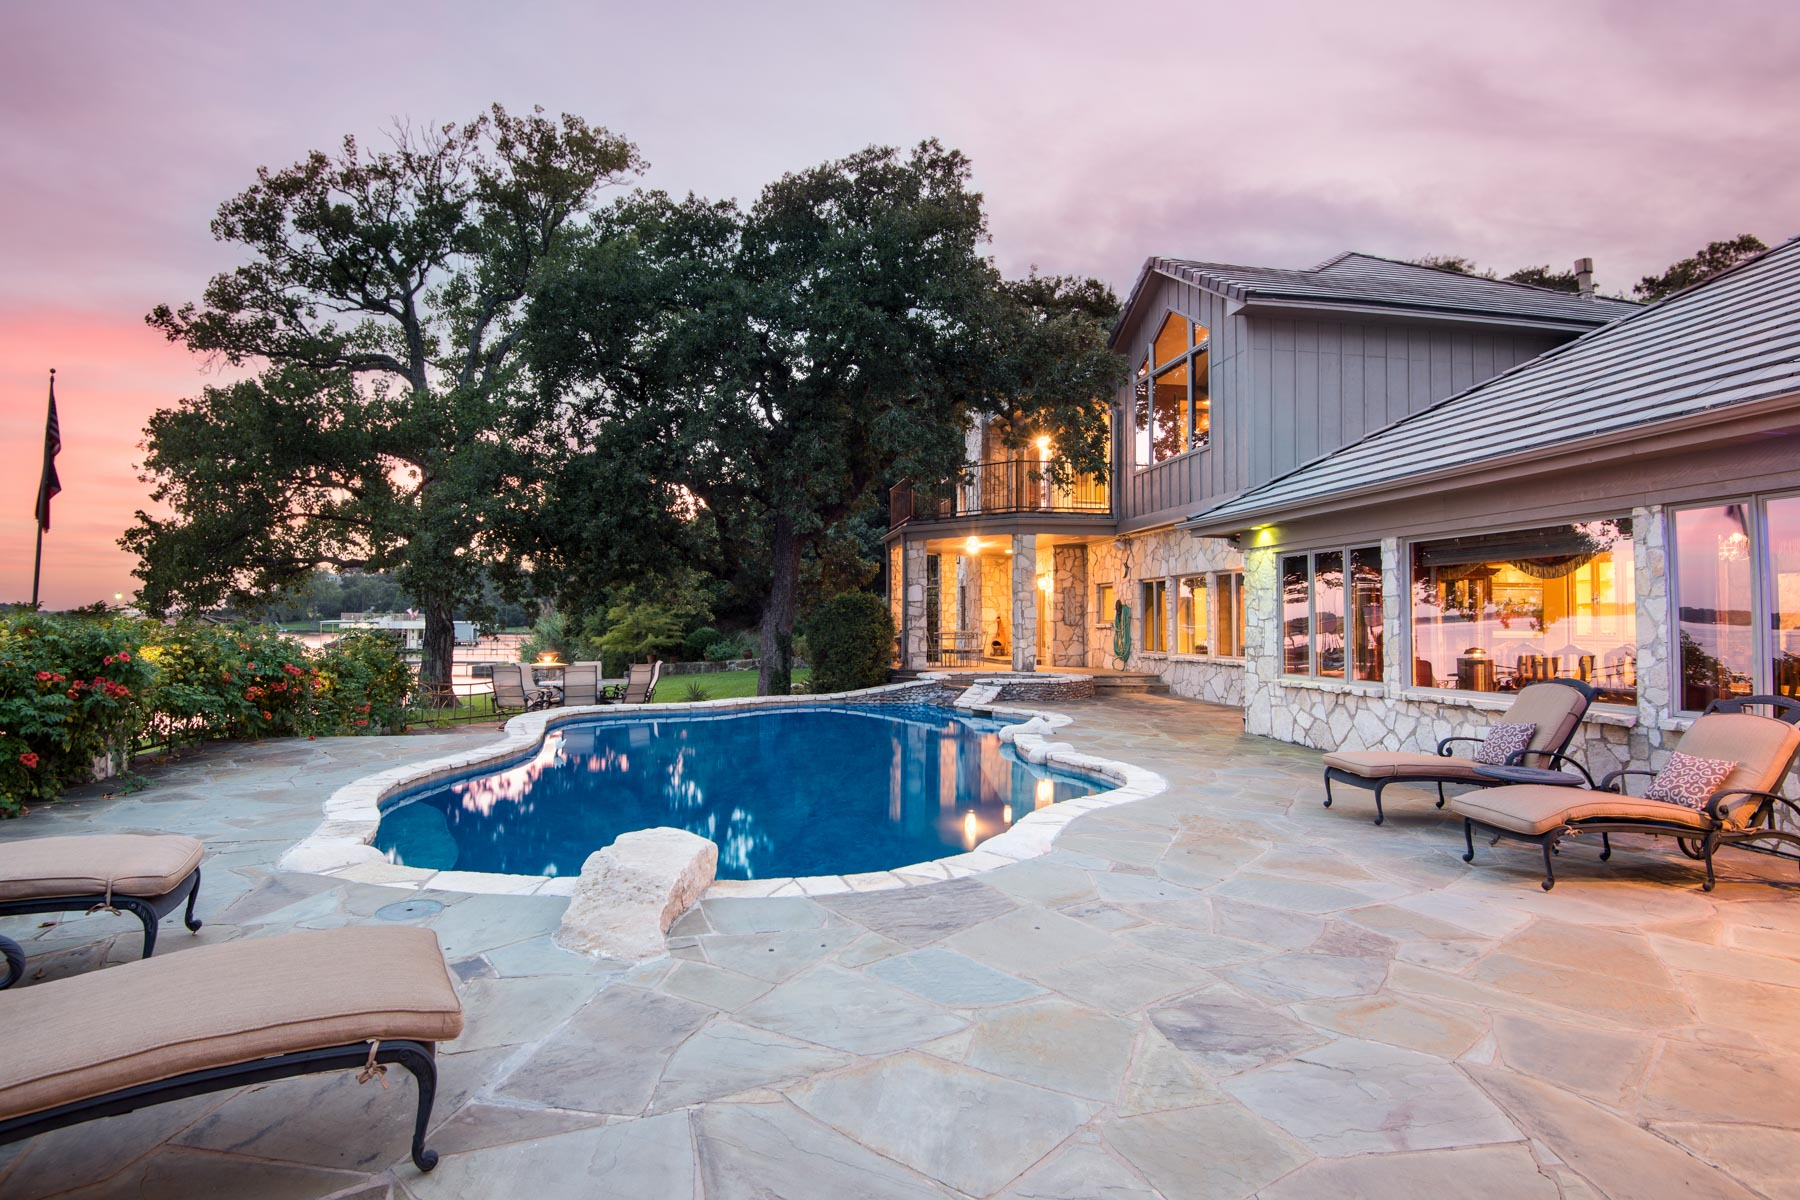 Villa per Vendita alle ore Eagle Mountain Lake Waterfront Jewel 9900 Boat Club Rd Fort Worth, Texas, 76179 Stati Uniti